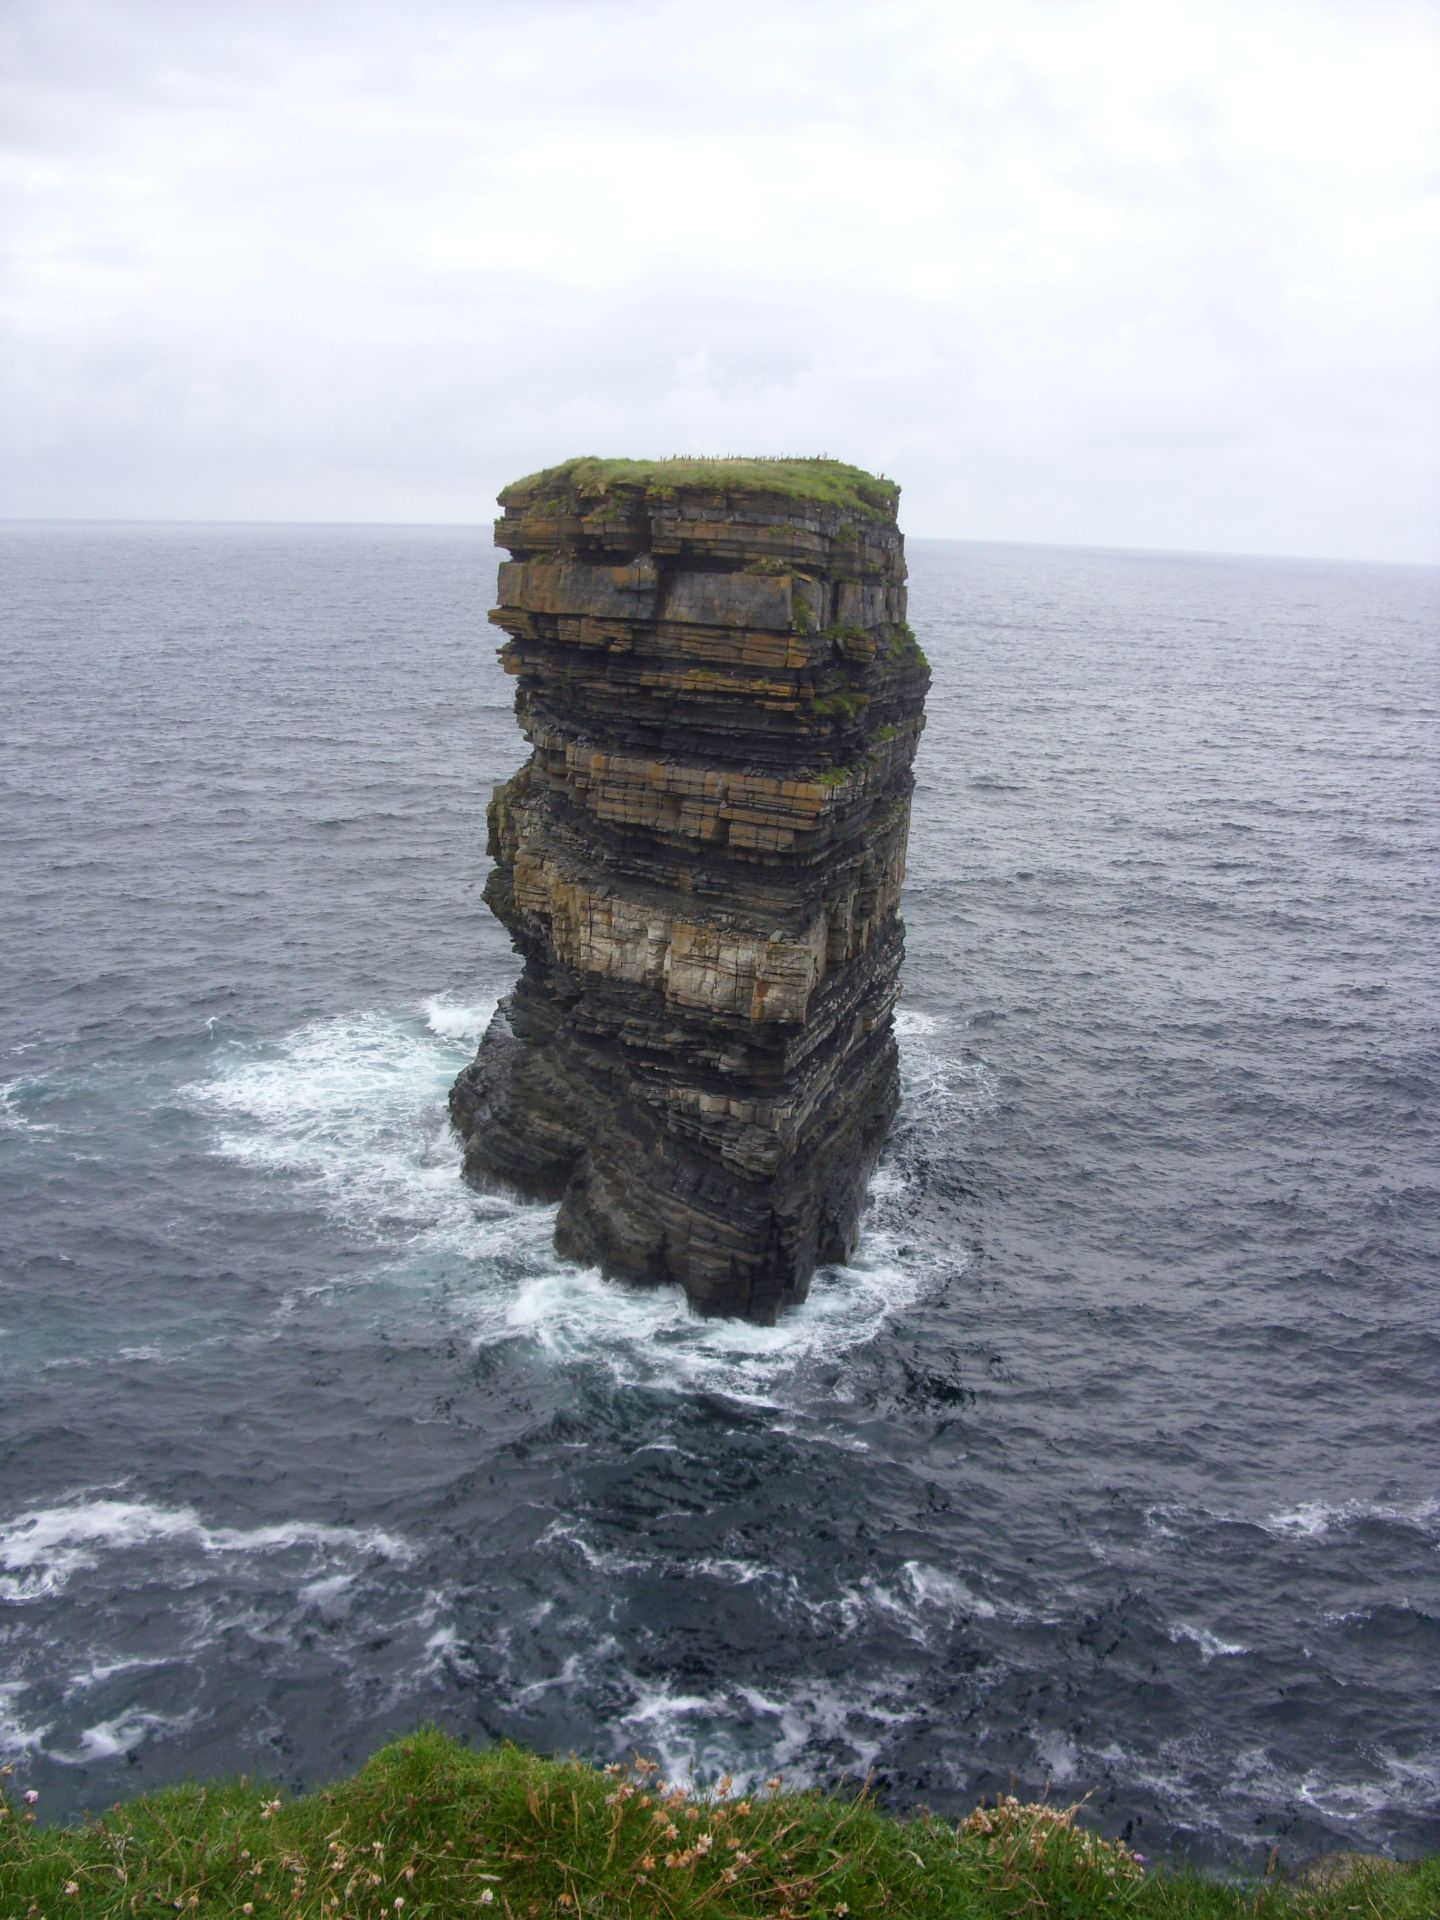 316 Dn Briste - Downpatrick Head